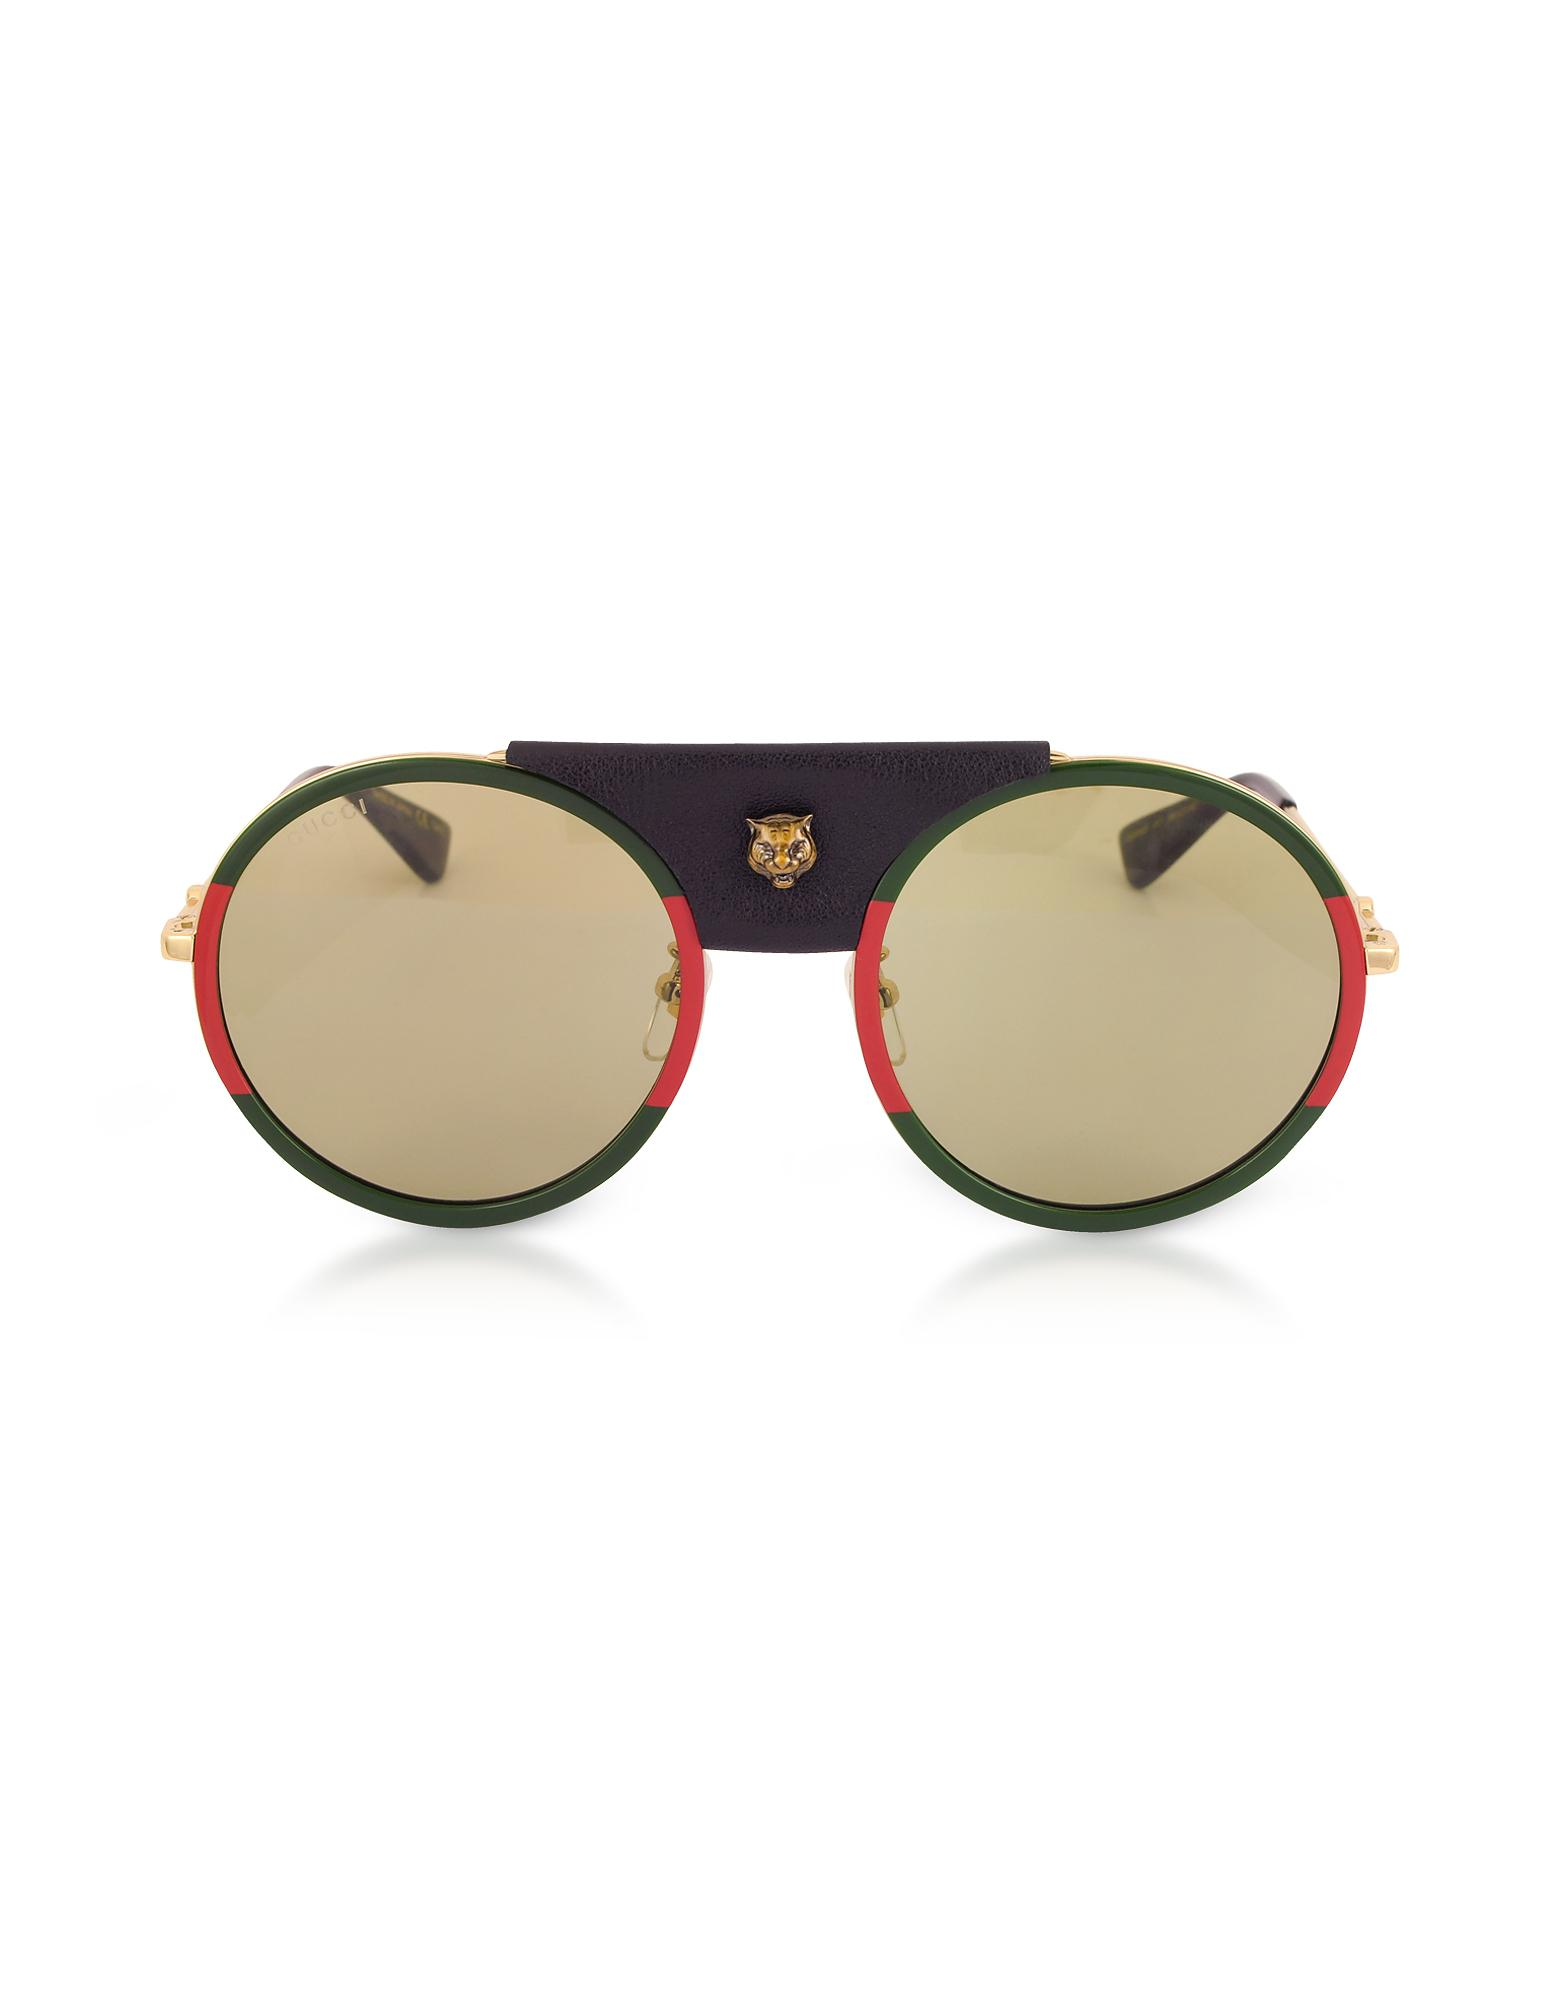 2626dddd029 Lyst gucci round frame gold metal and black leather jpg 1560x2000 Gucci  sunglasses gold with diamonds